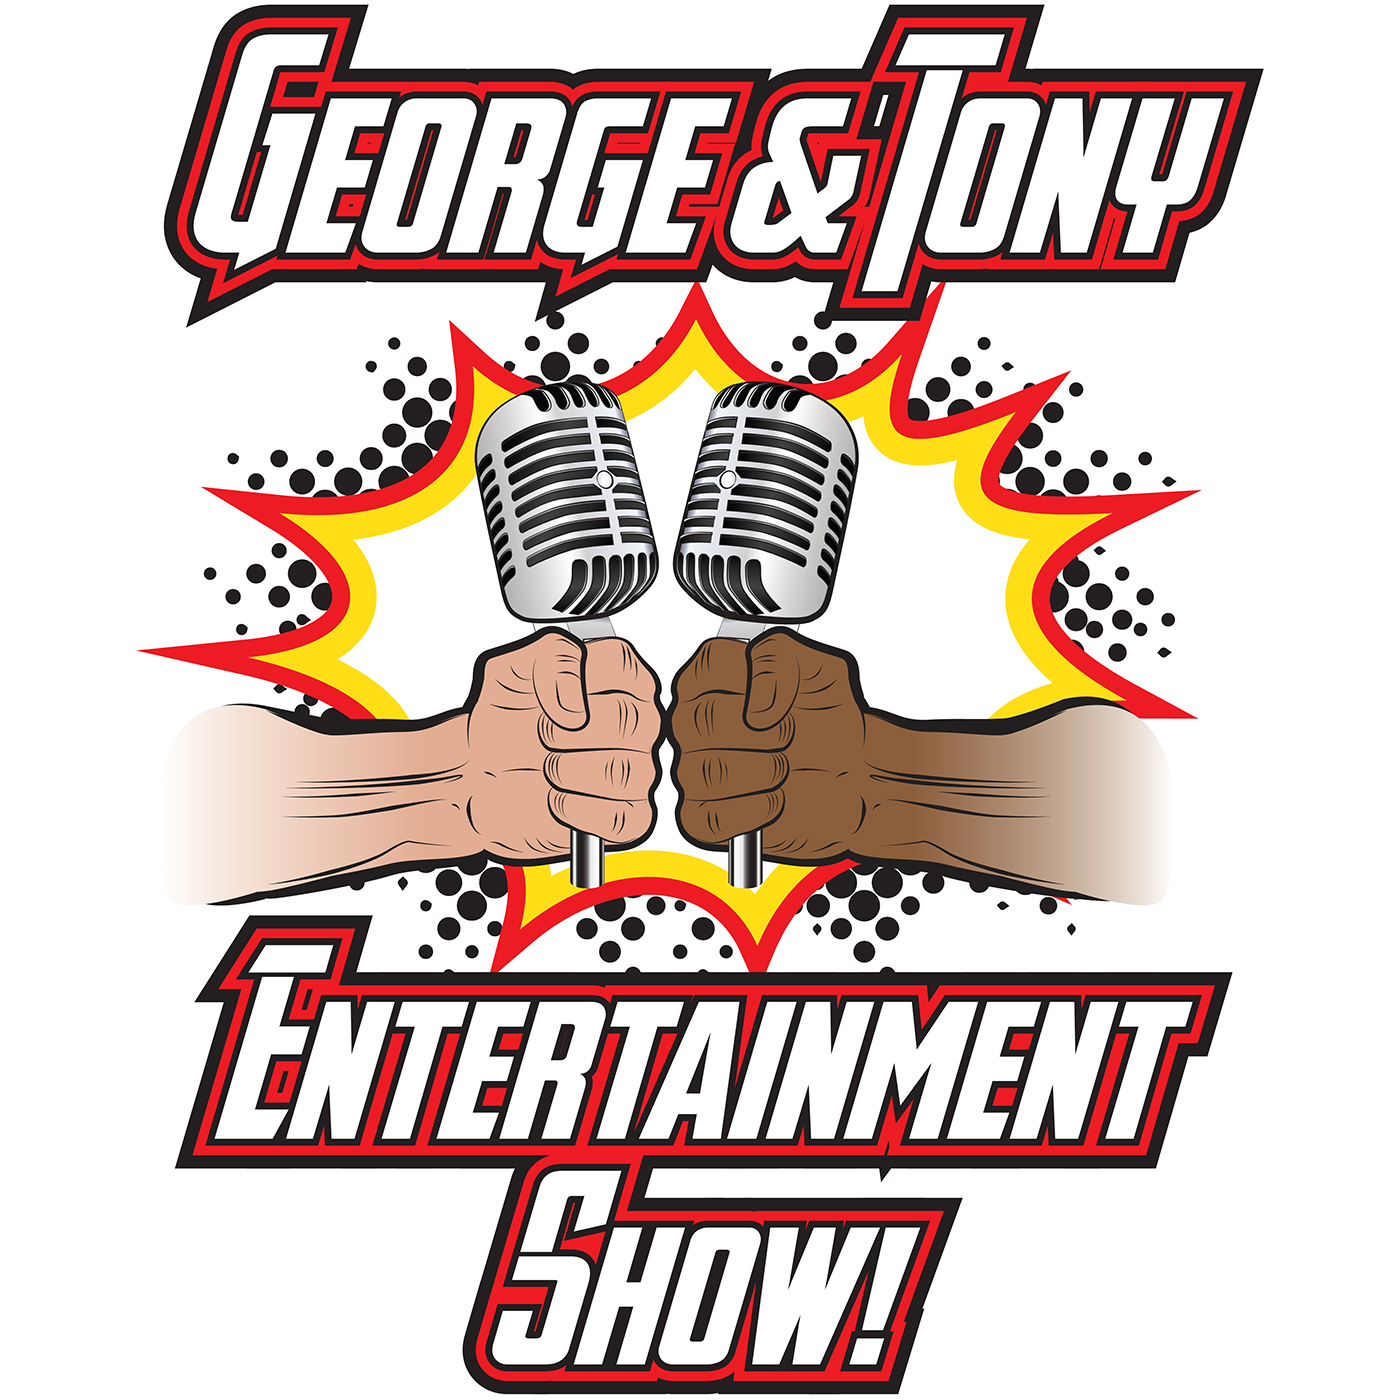 George and Tony Entertainment Show #158